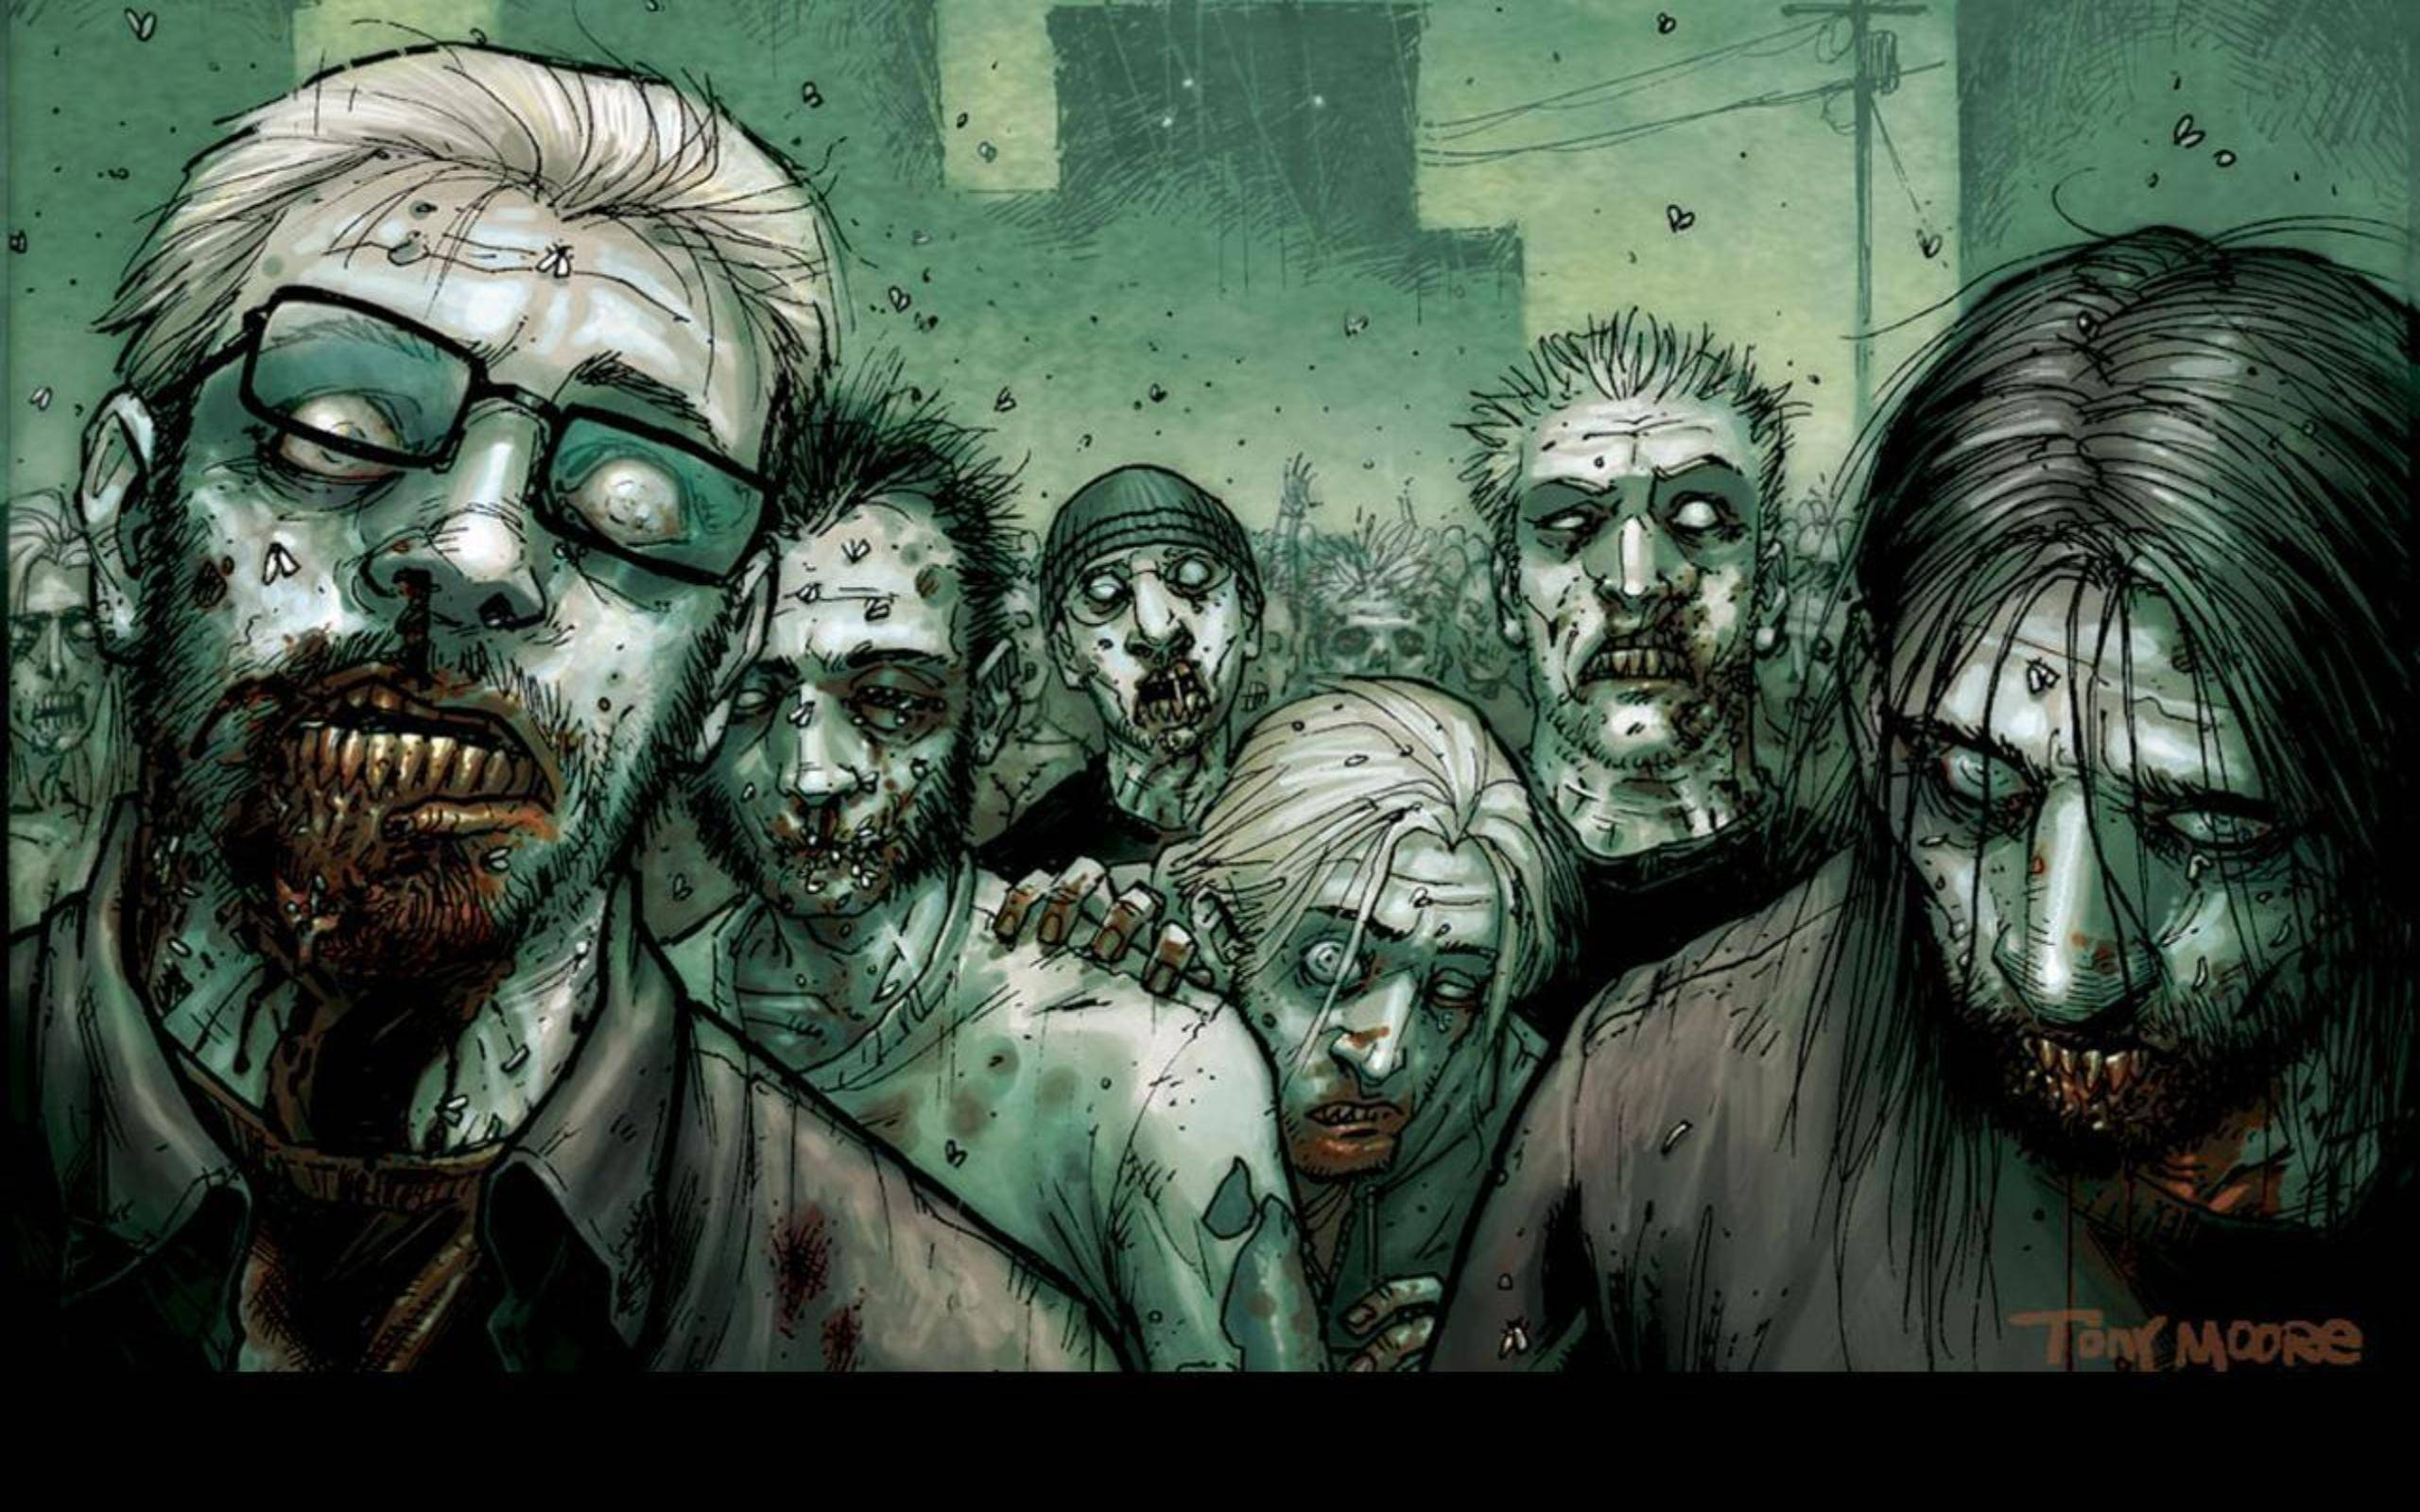 One Amazing Zombie Desktop Wallpaper for YouZombies Wallpaper